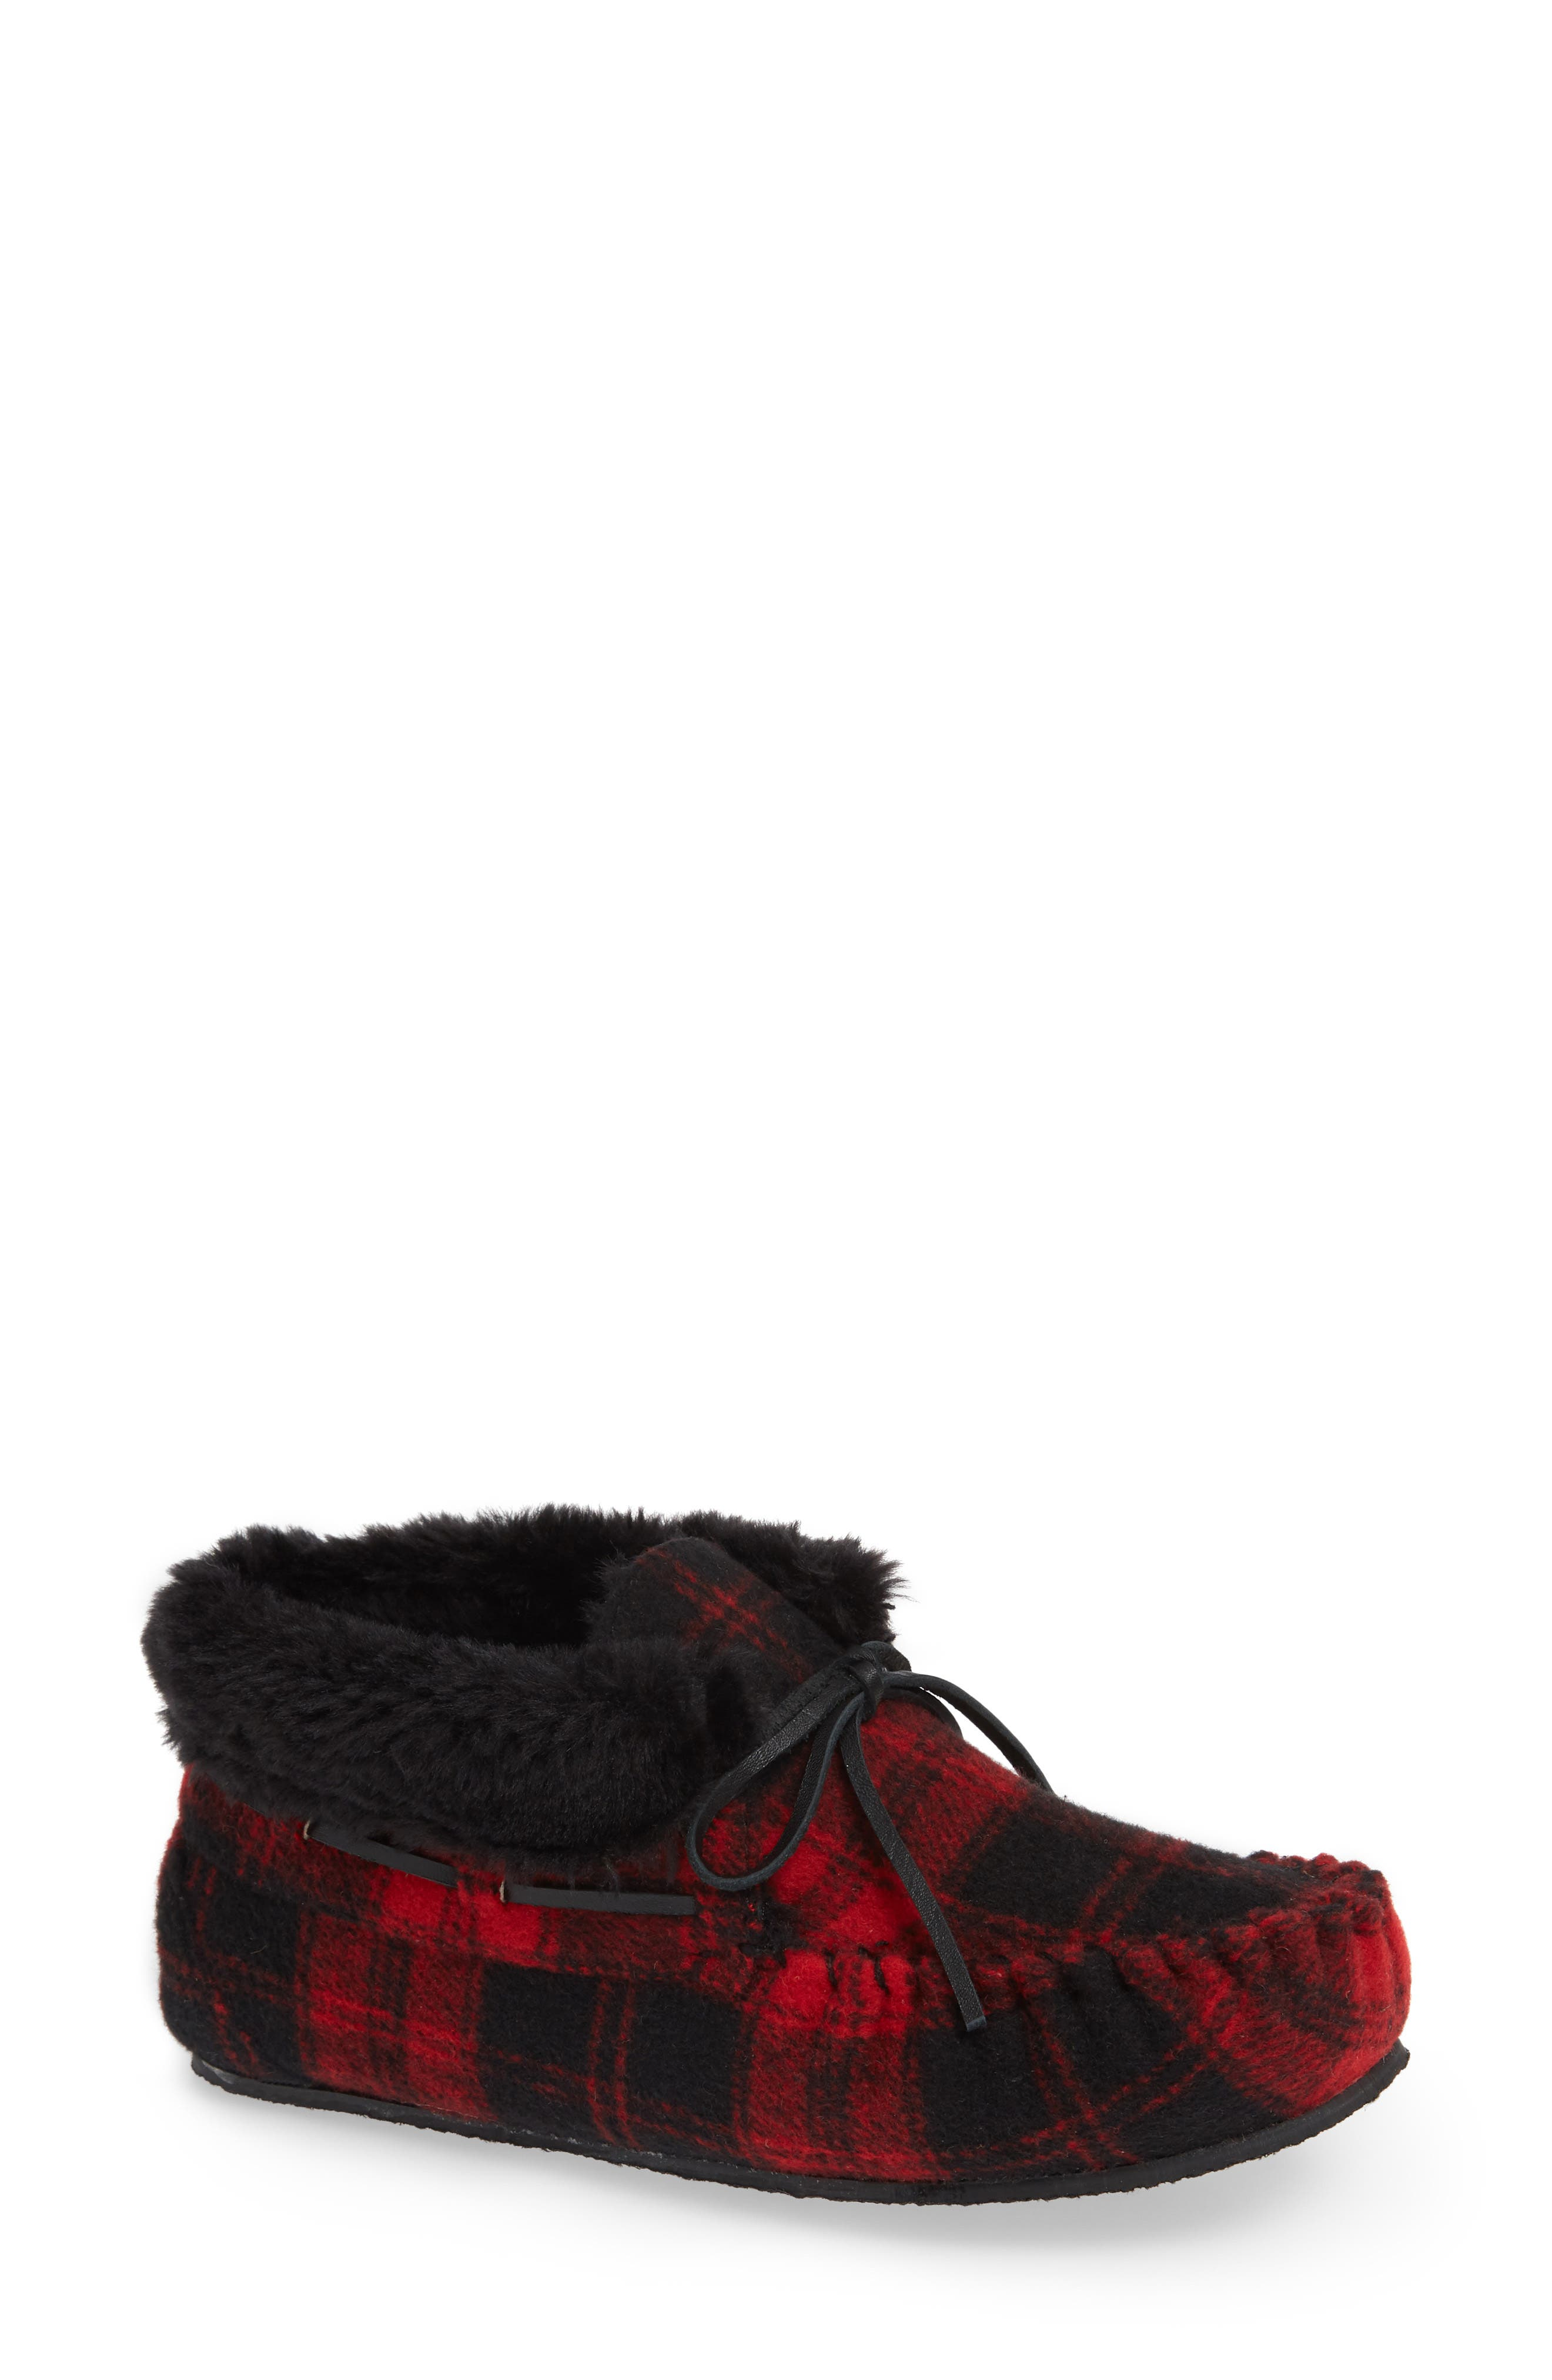 MINNETONKA 'Chrissy' Slipper Bootie, Main, color, RED PLAID FABRIC